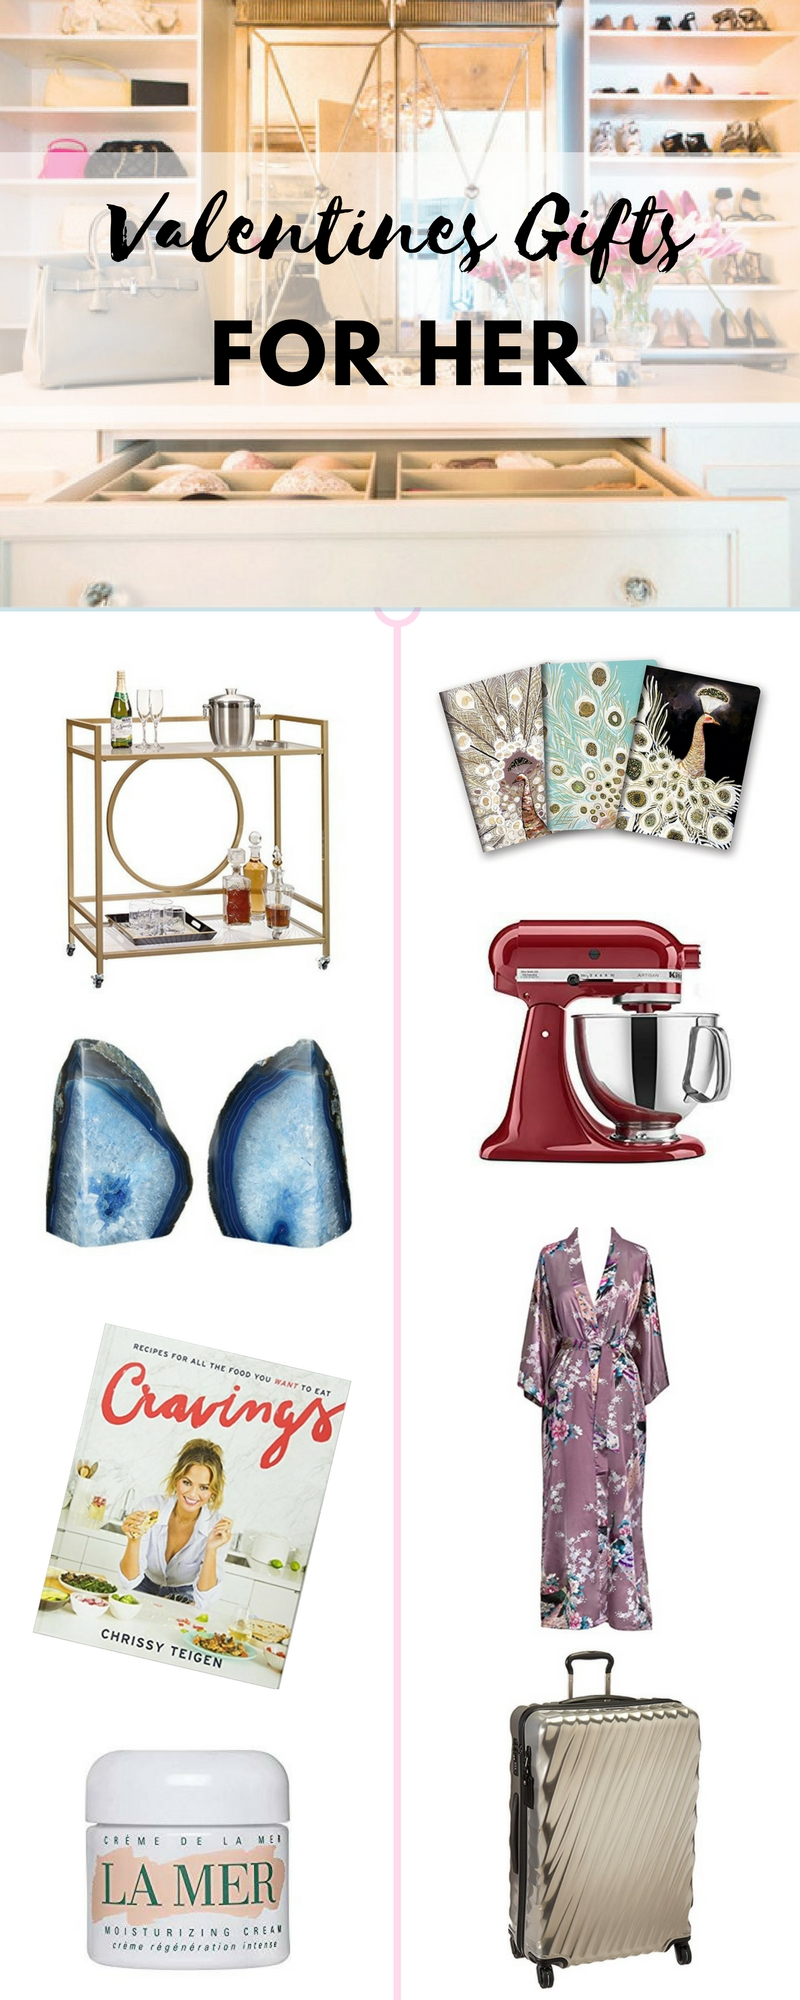 Here are some great gift ideas for her!